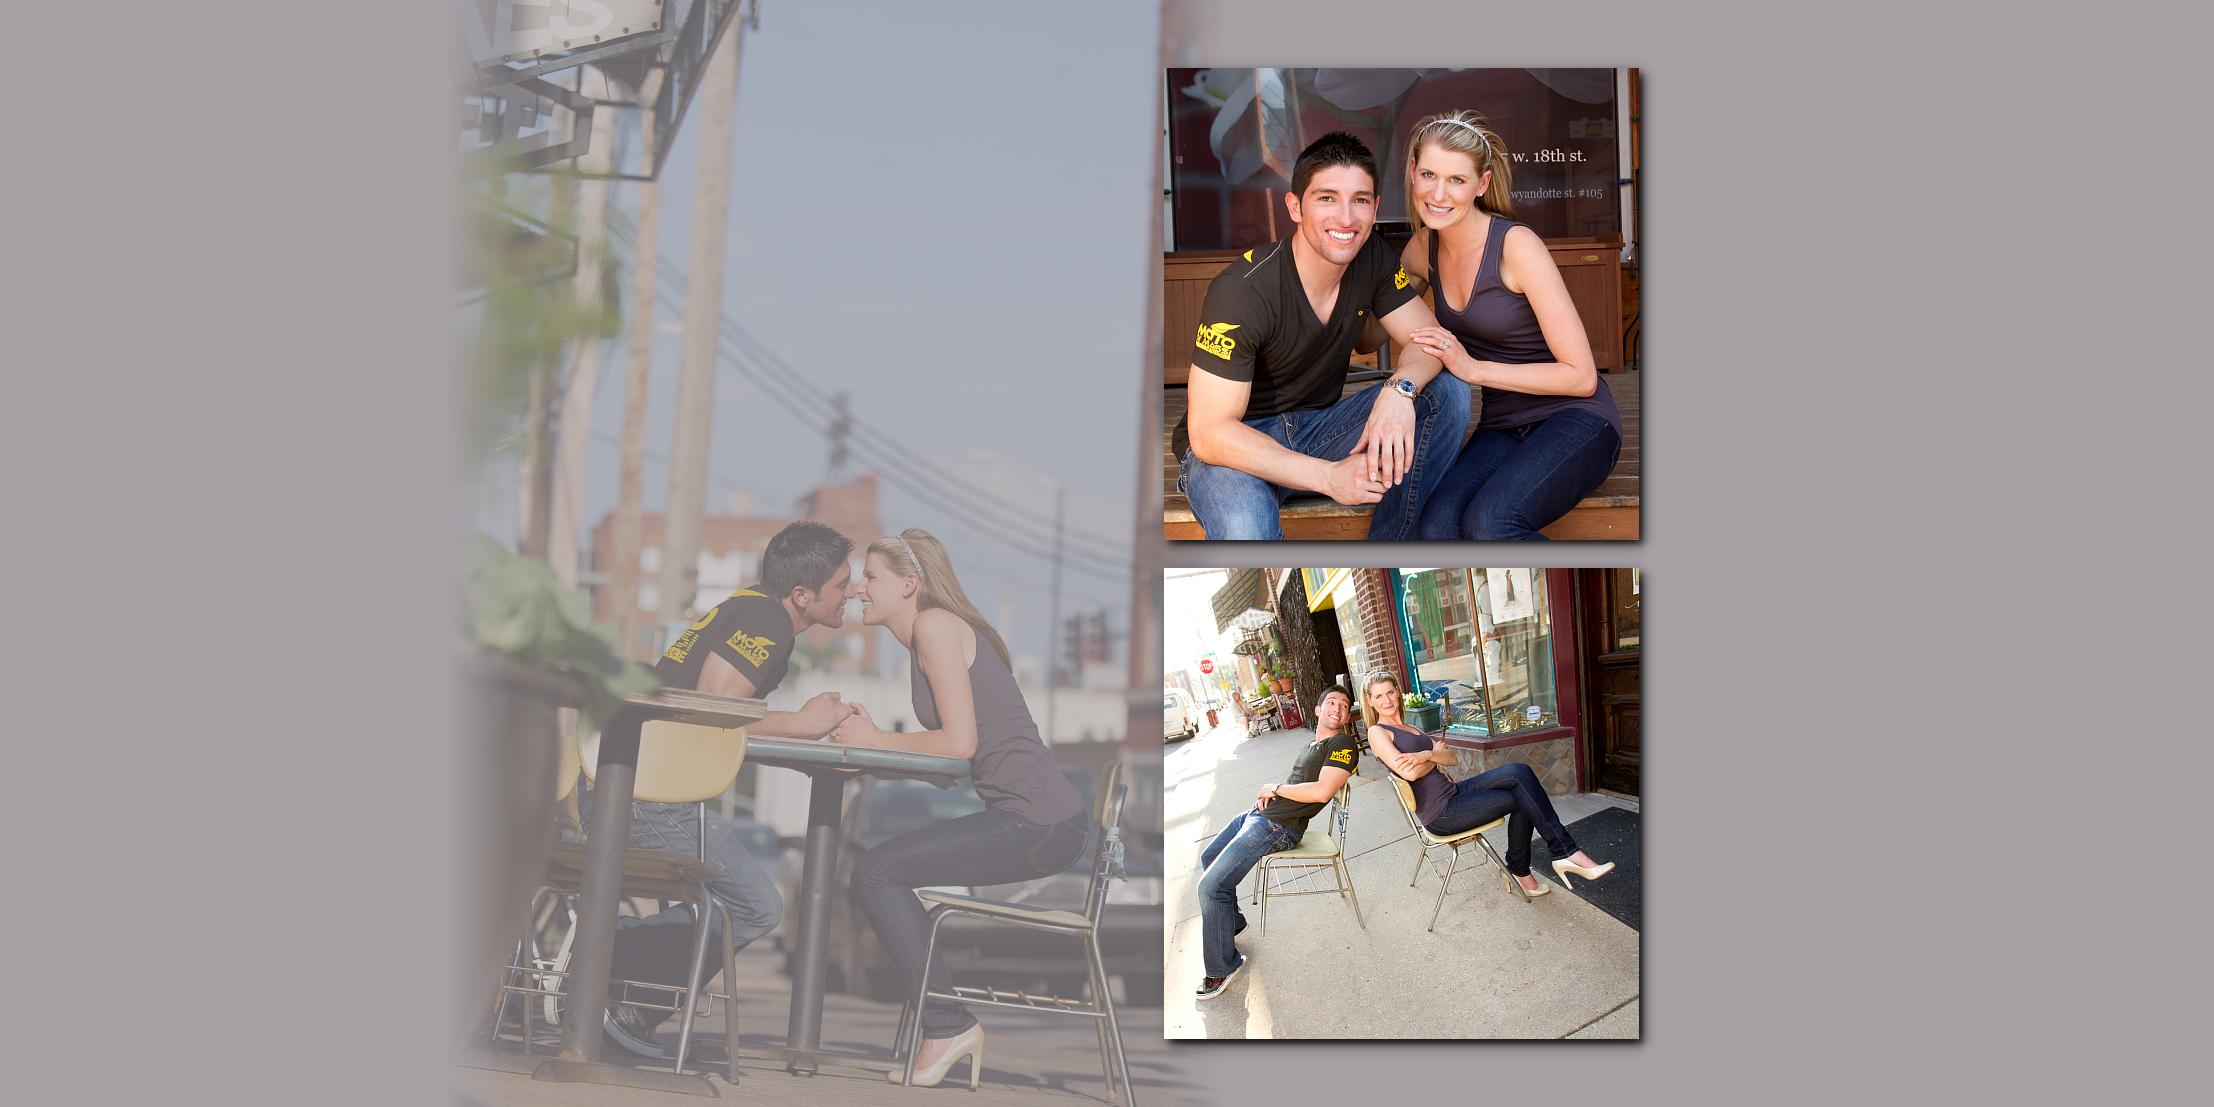 schmidt-photo-weddings-engagement-photography 013 (Sides 24-25)